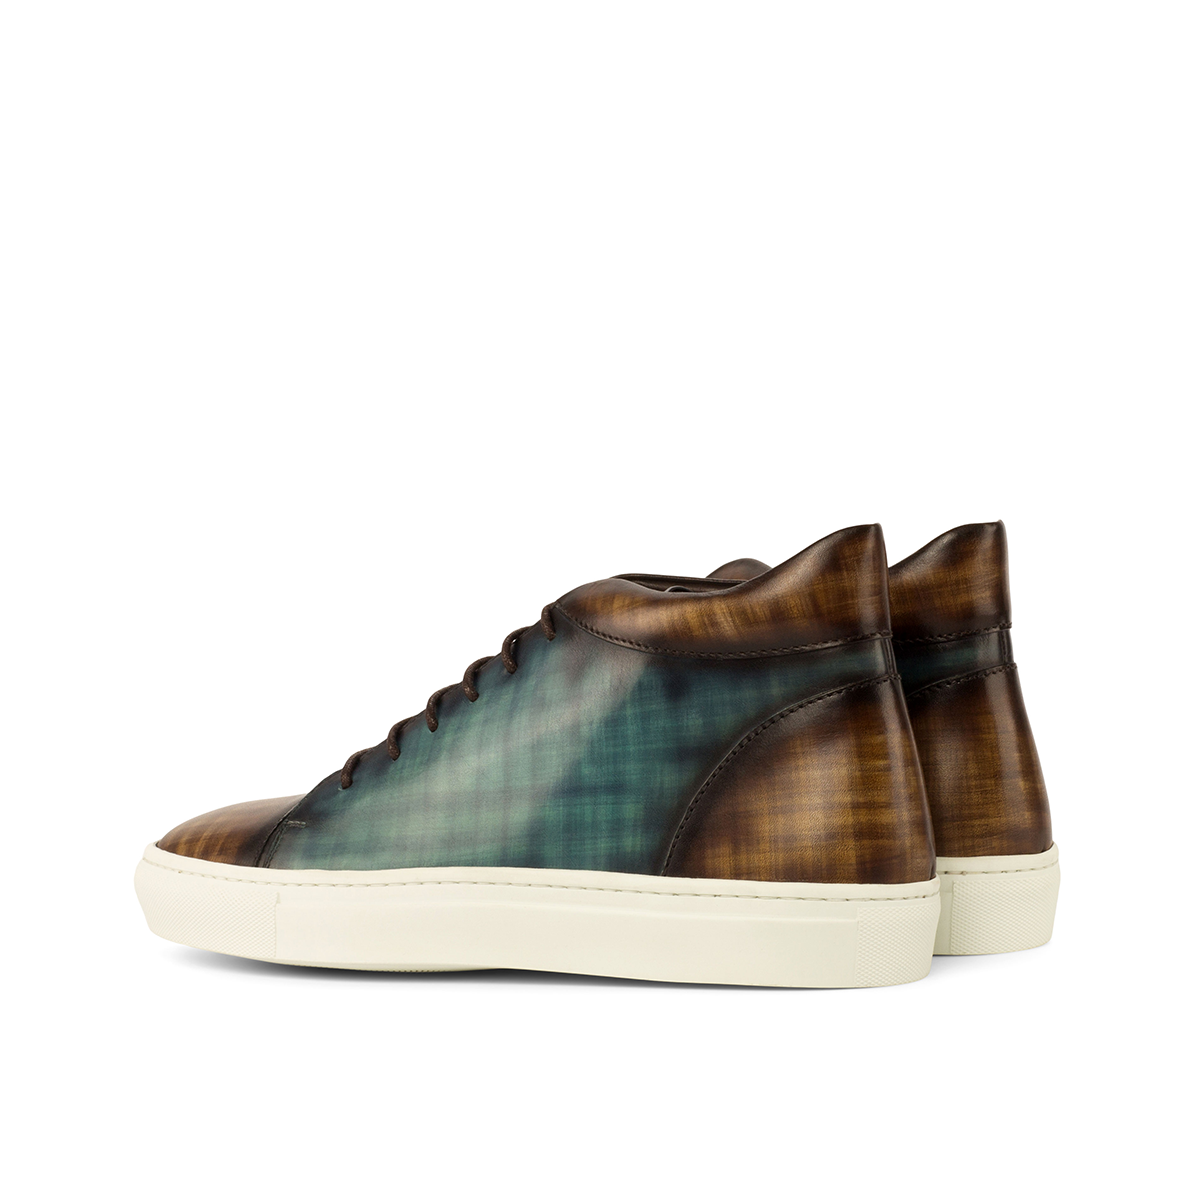 Crust patina turquoise high top sneakers